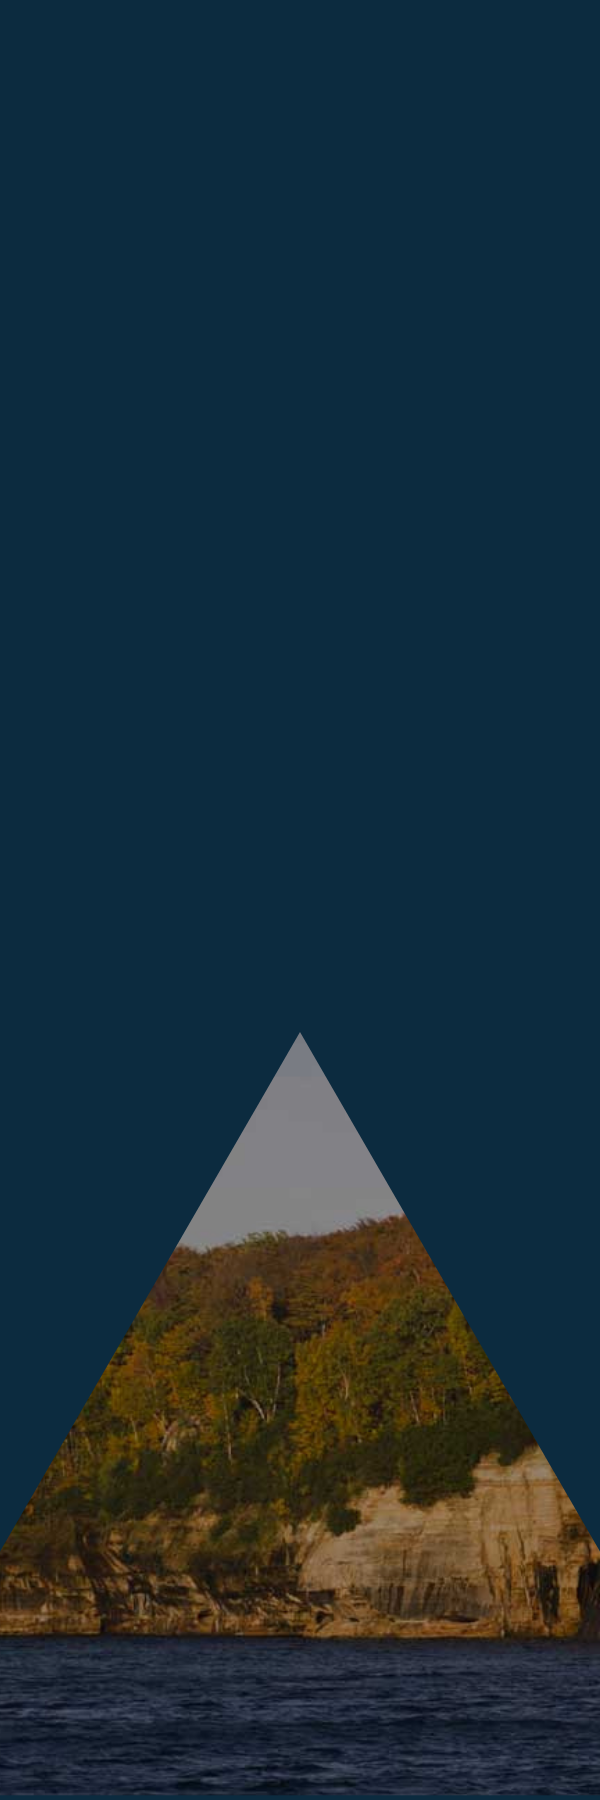 Blue sidebar panel image with cliffs